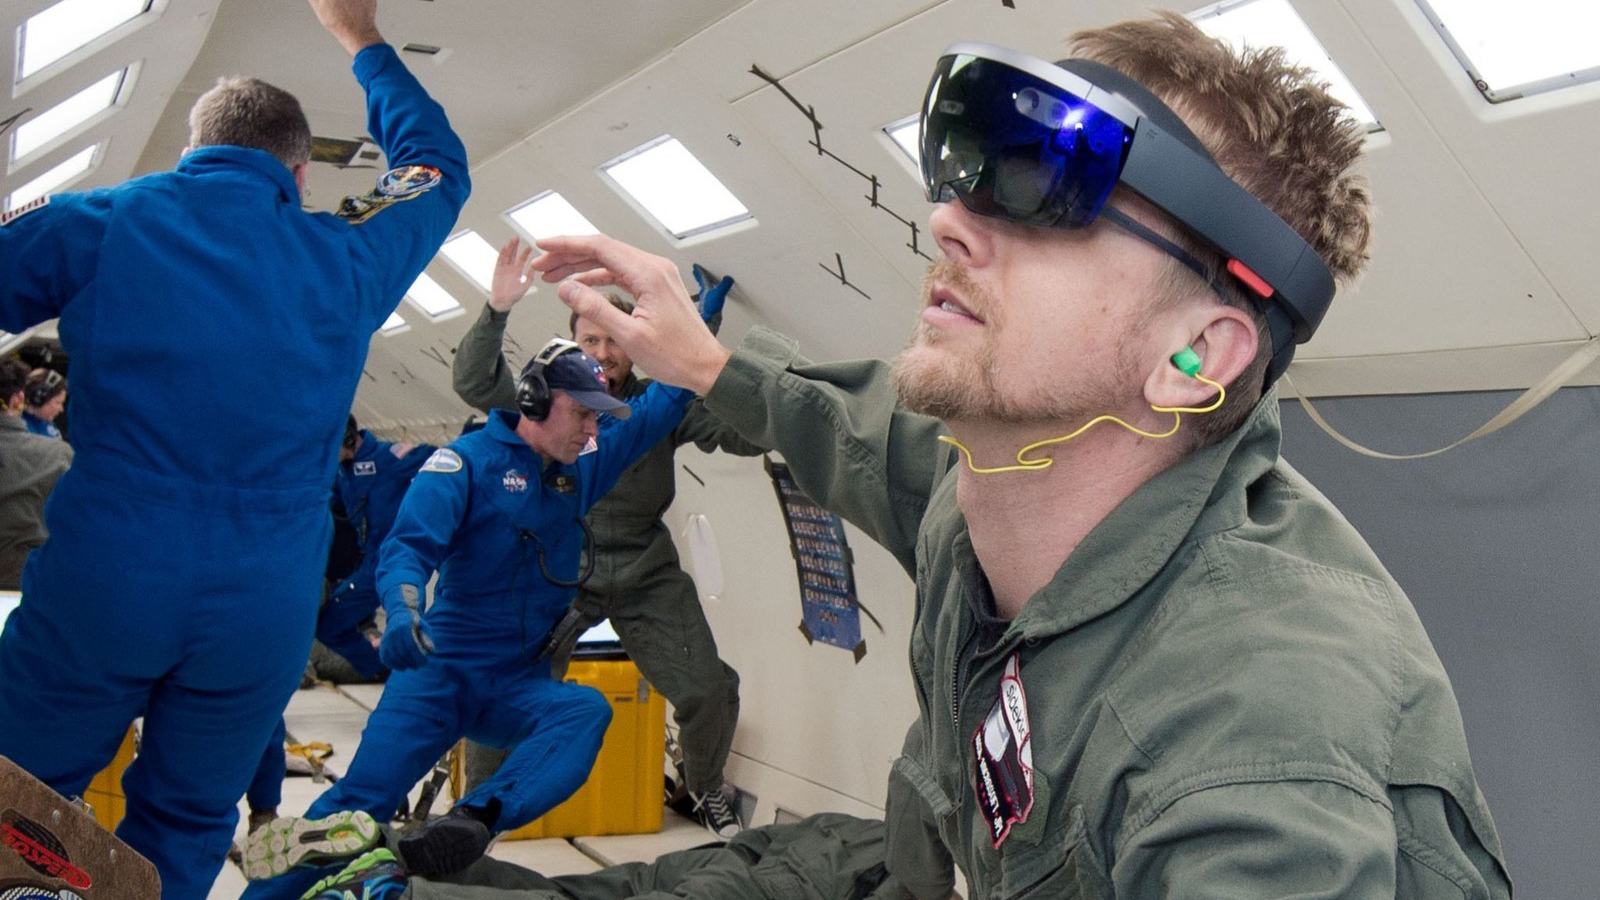 To Facilitate Better Sleep For Astronauts, NASA Turns To A mHealth Wearable